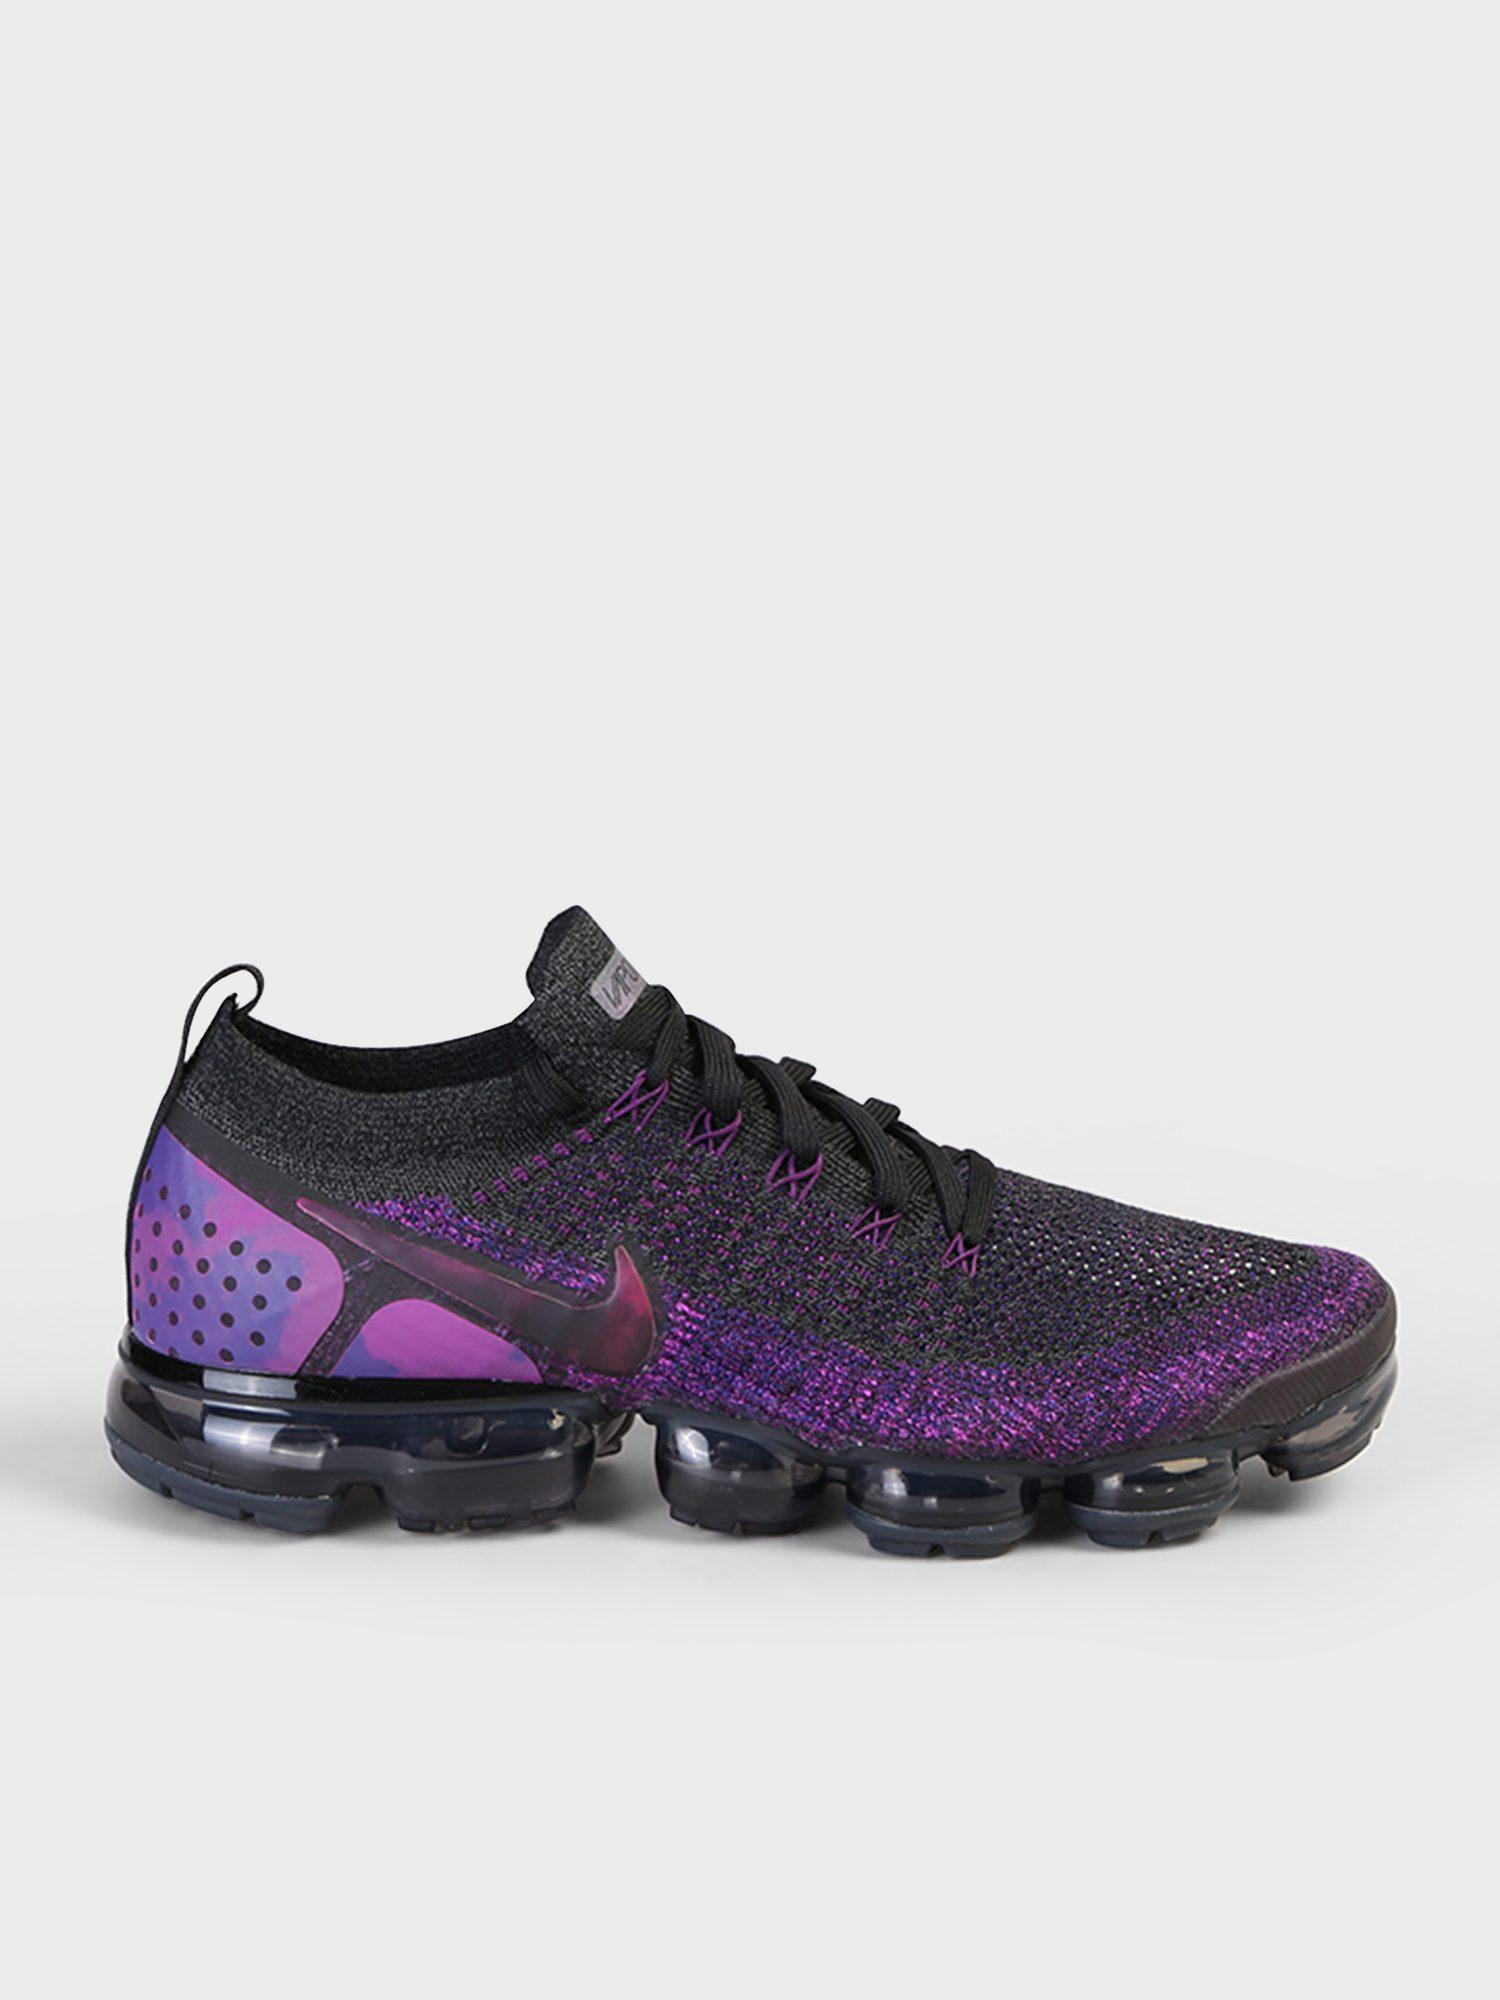 best service 1c7ef 02a80 Nike Air Vapormax Flyknit 2 Sneakers for Men - Lyst